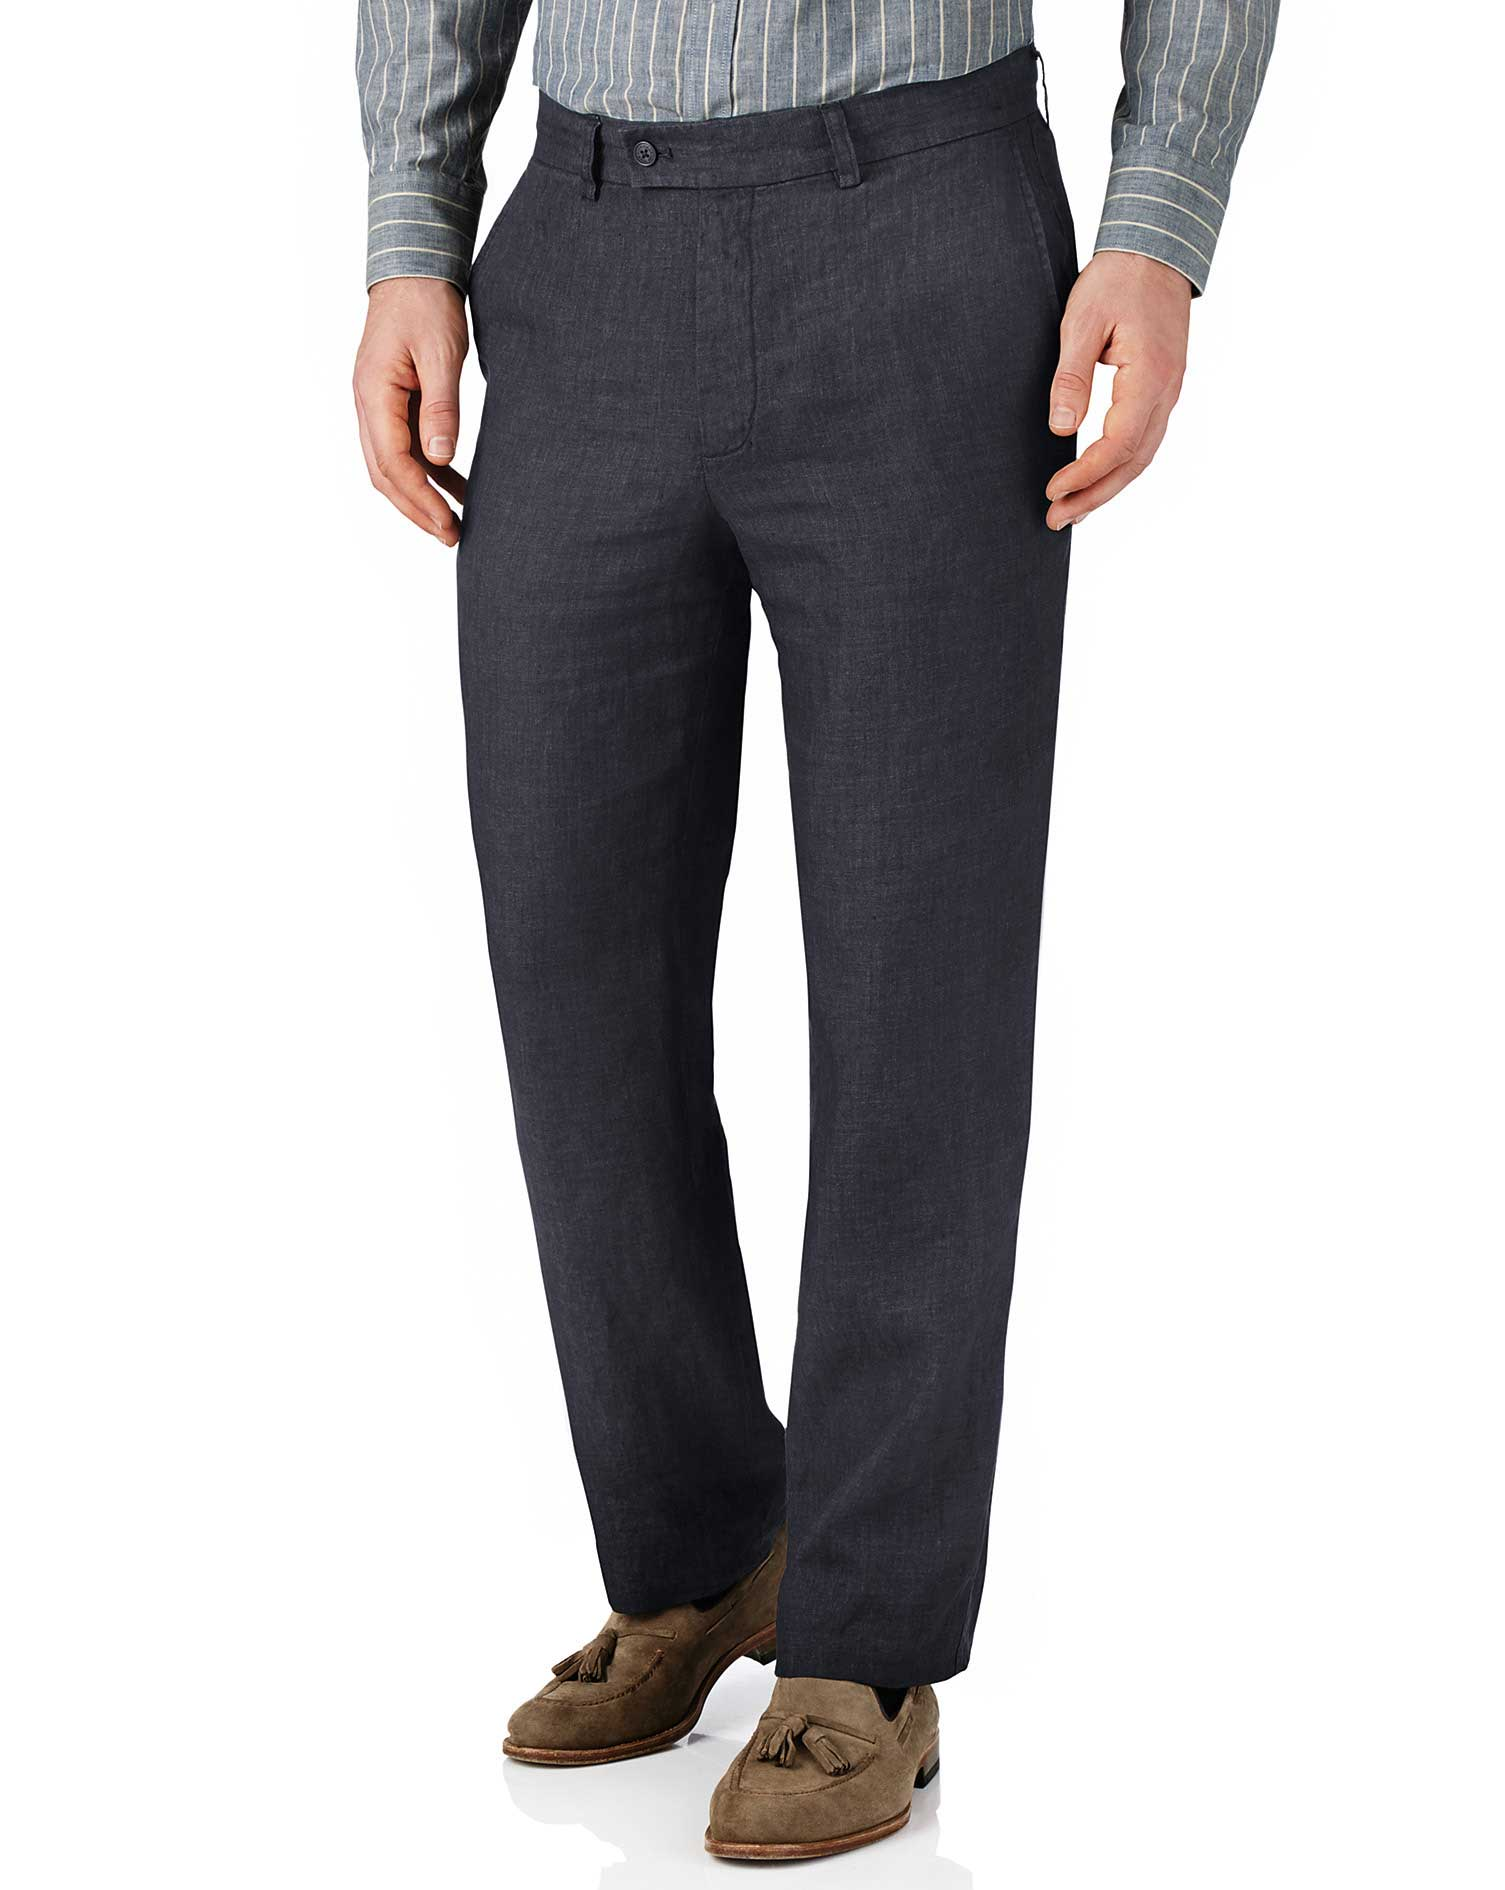 Navy Classic Fit Linen Trousers Size W40 L30 by Charles Tyrwhitt